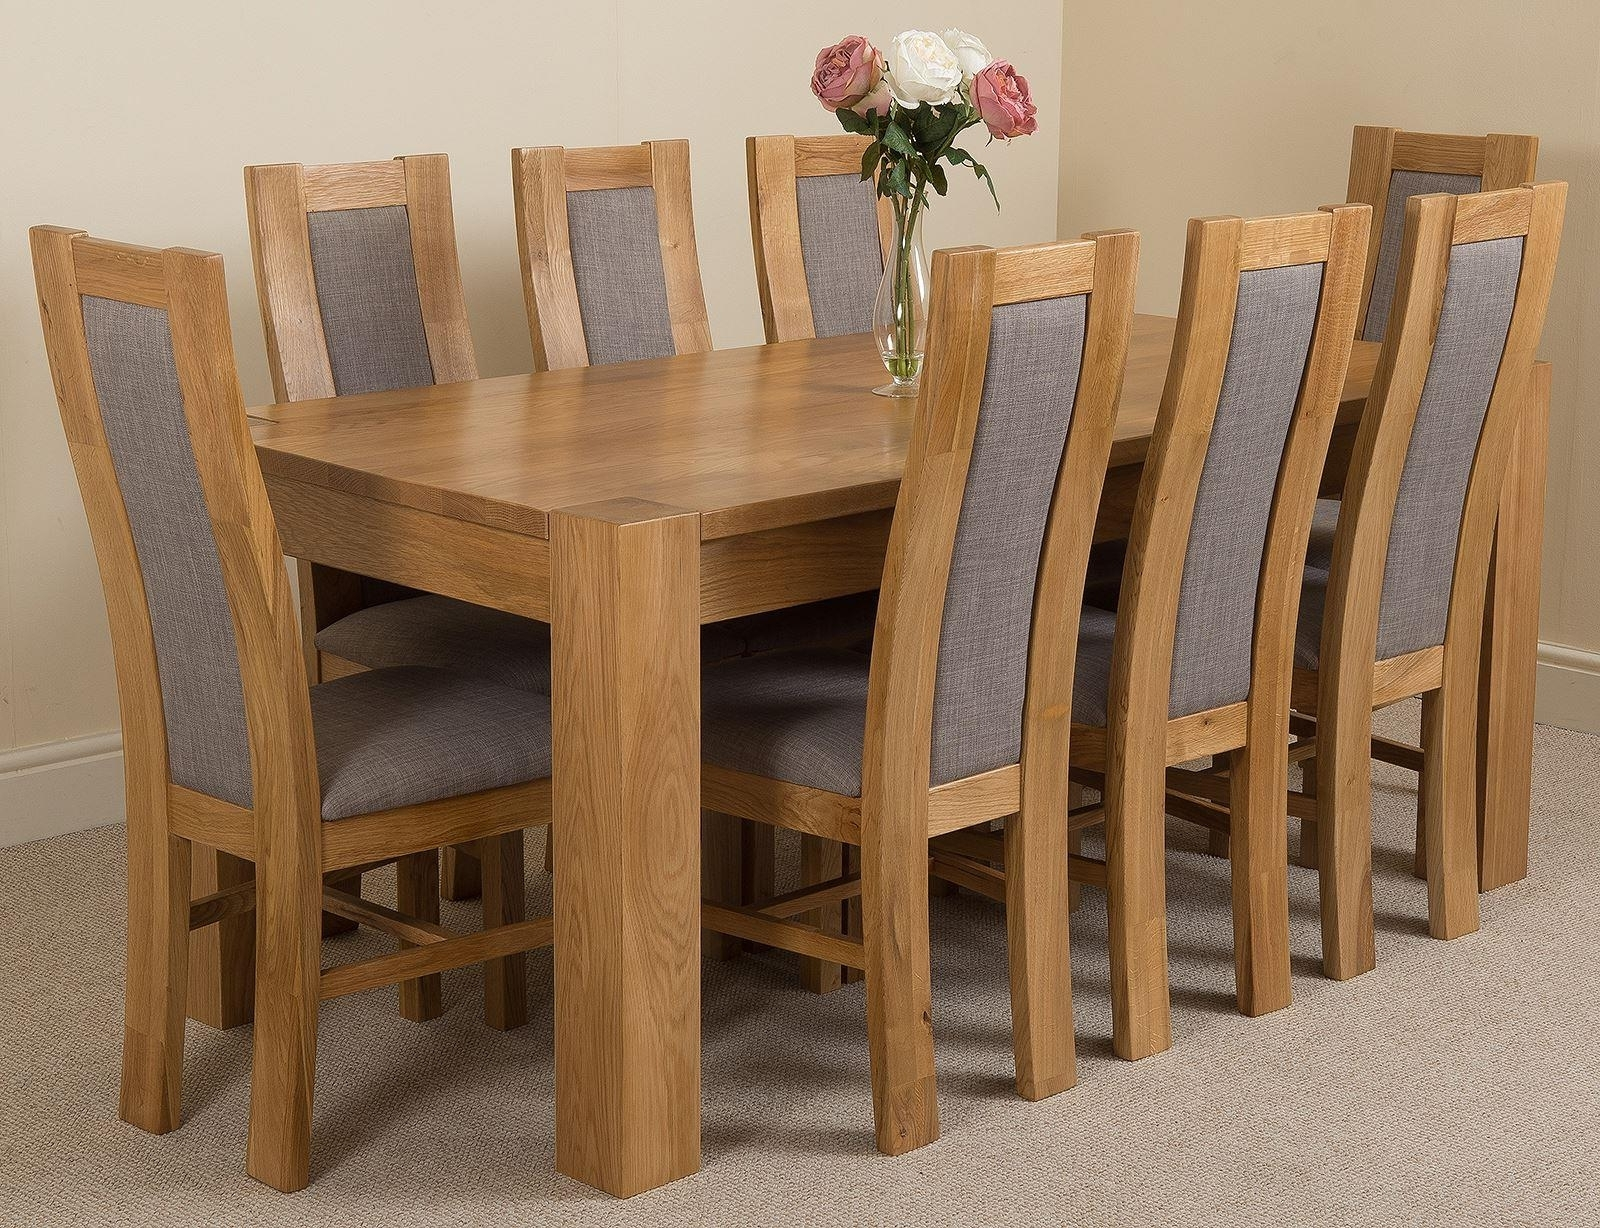 2018 Oak Dining Tables And Fabric Chairs for Kuba Solid Oak Dining Table & 8 Stanford Solid Oak Fabric Chairs